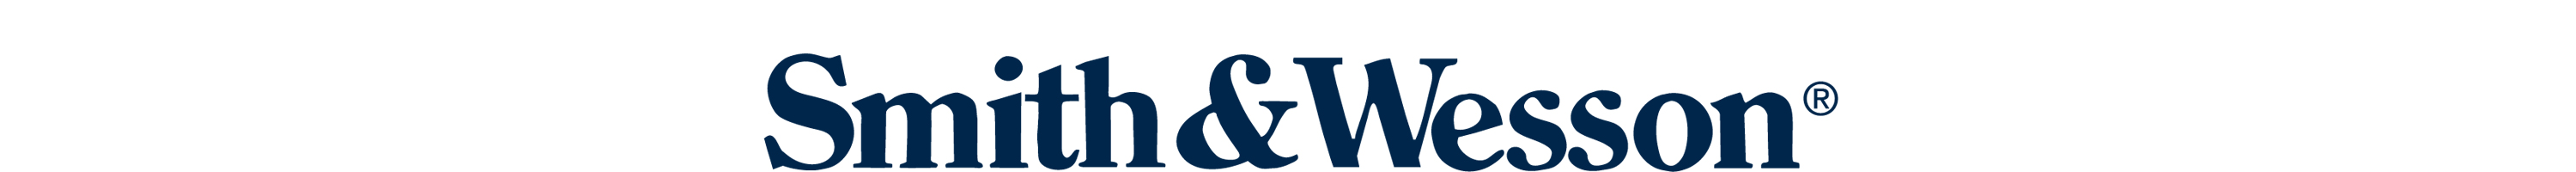 Smith & Wesson Firearms Logo